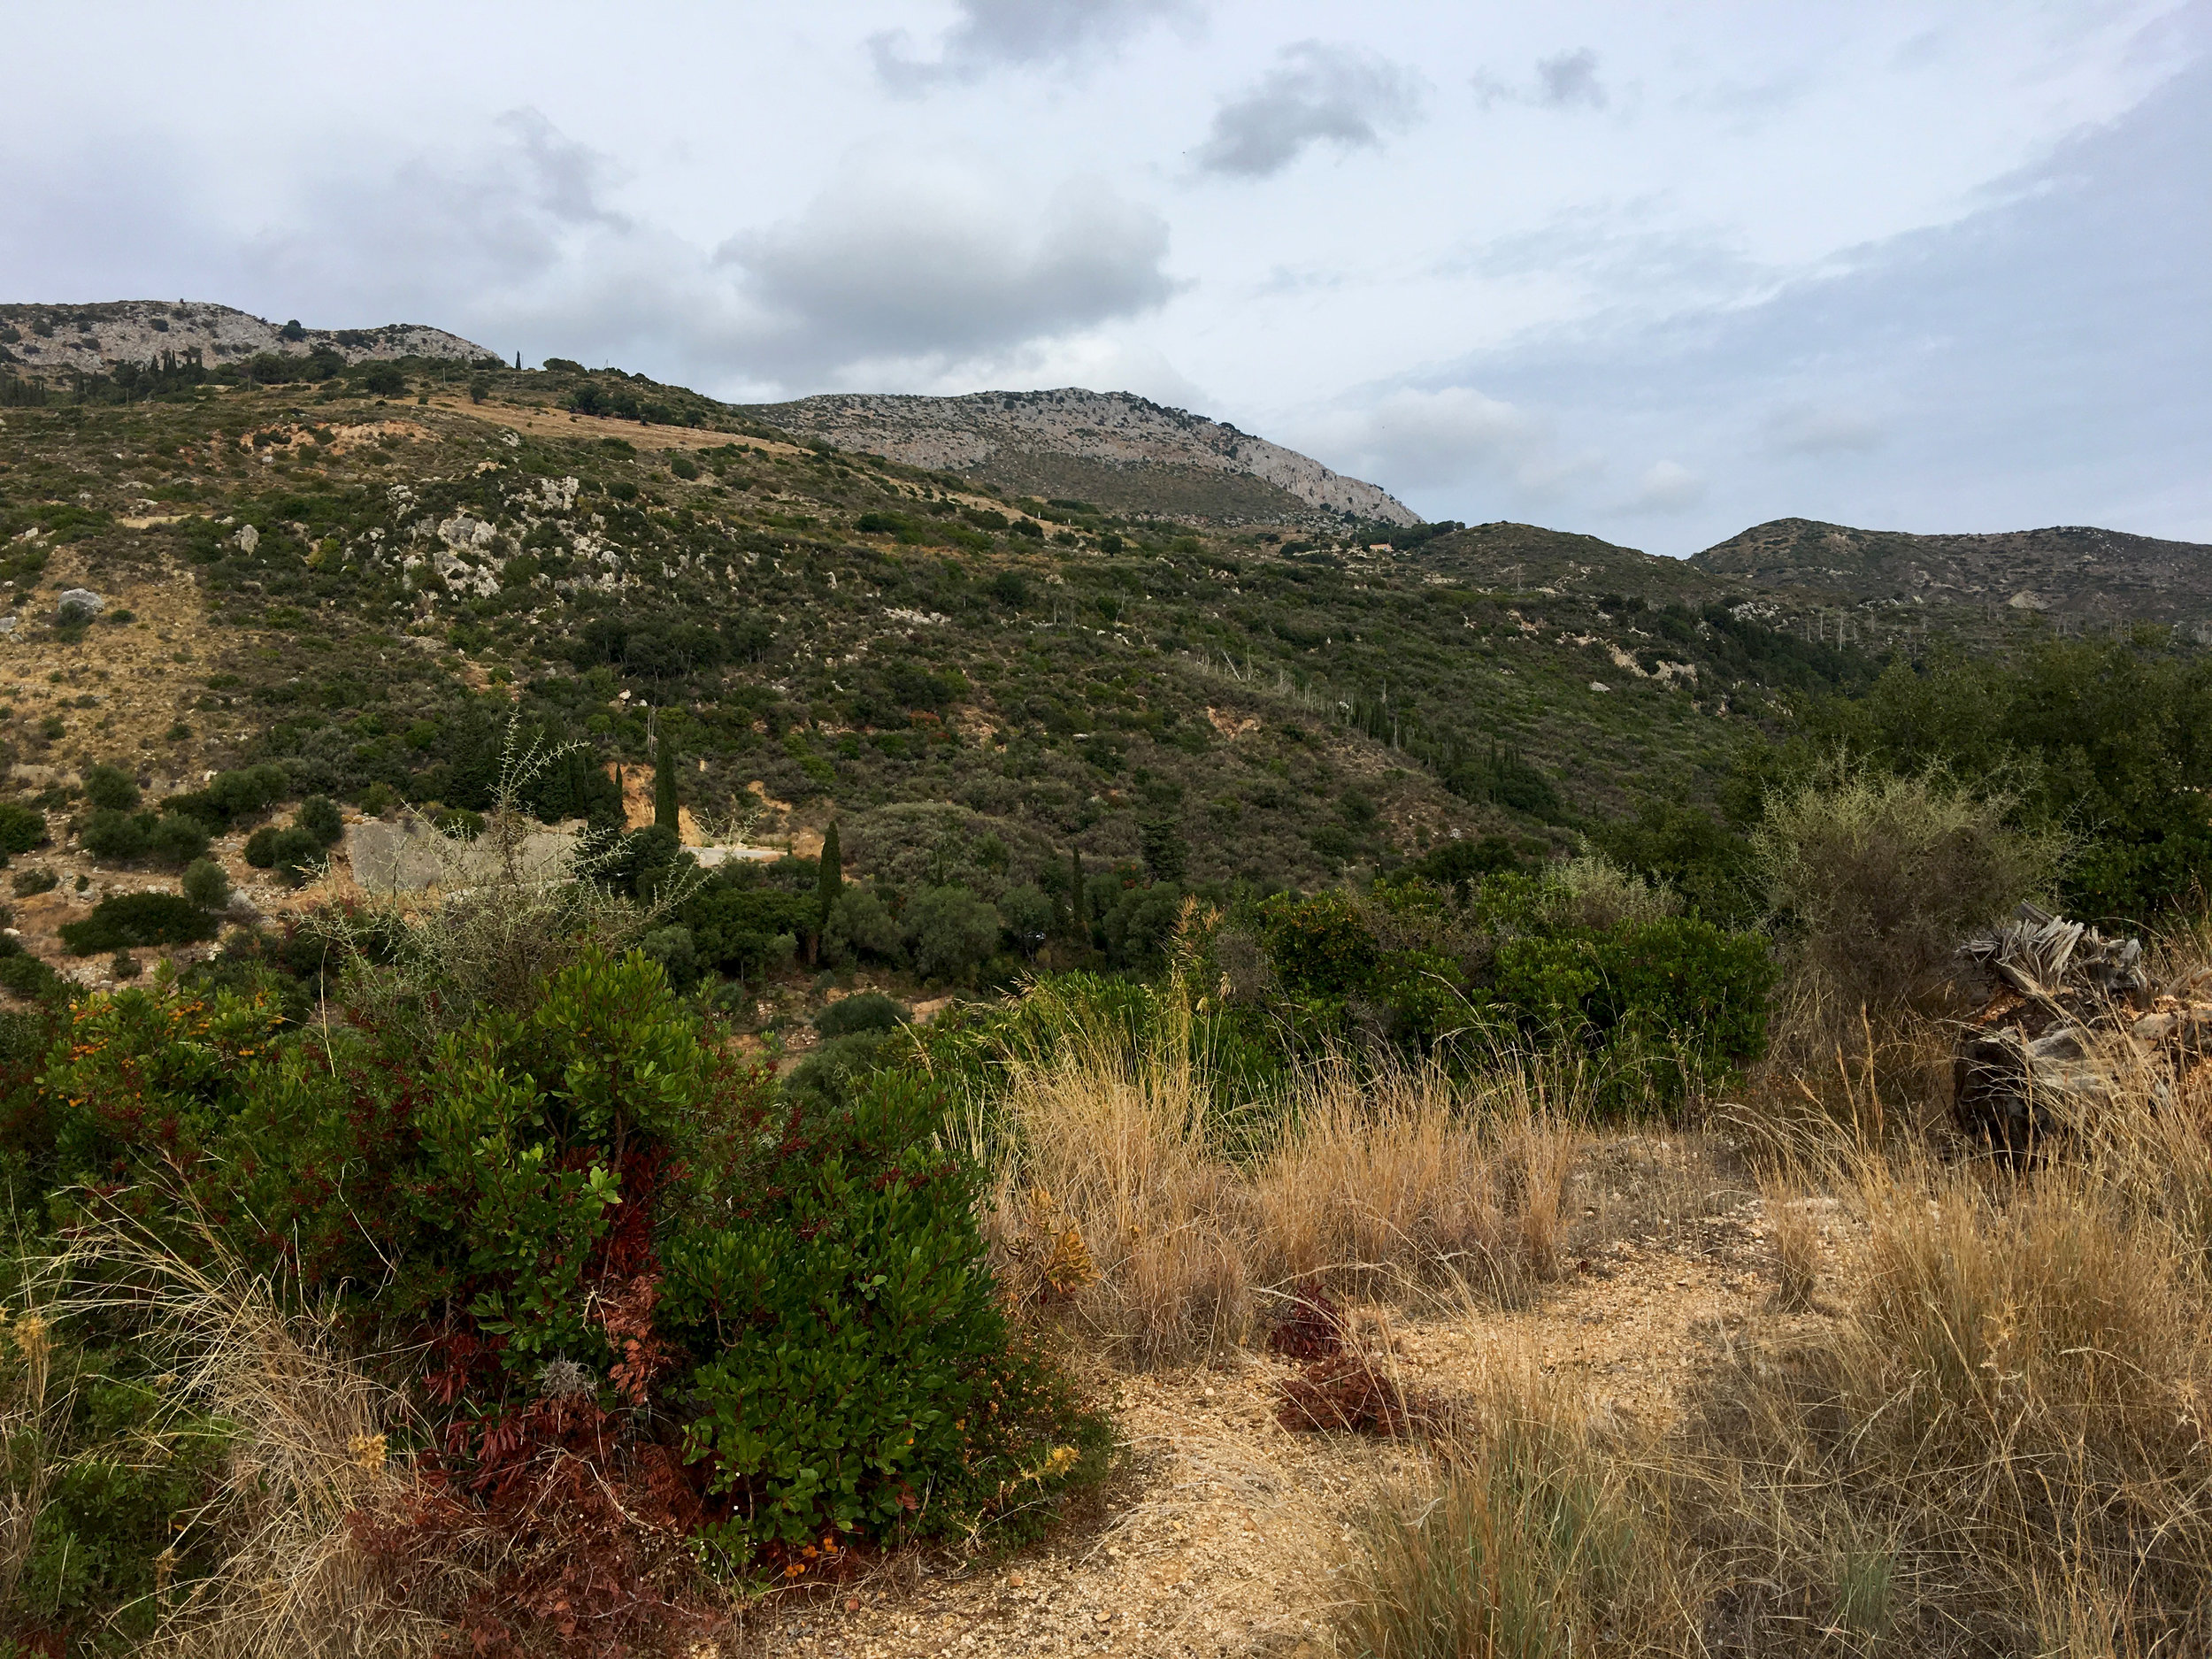 A look at Skala's peaks as we begin the hike to Old Skala.